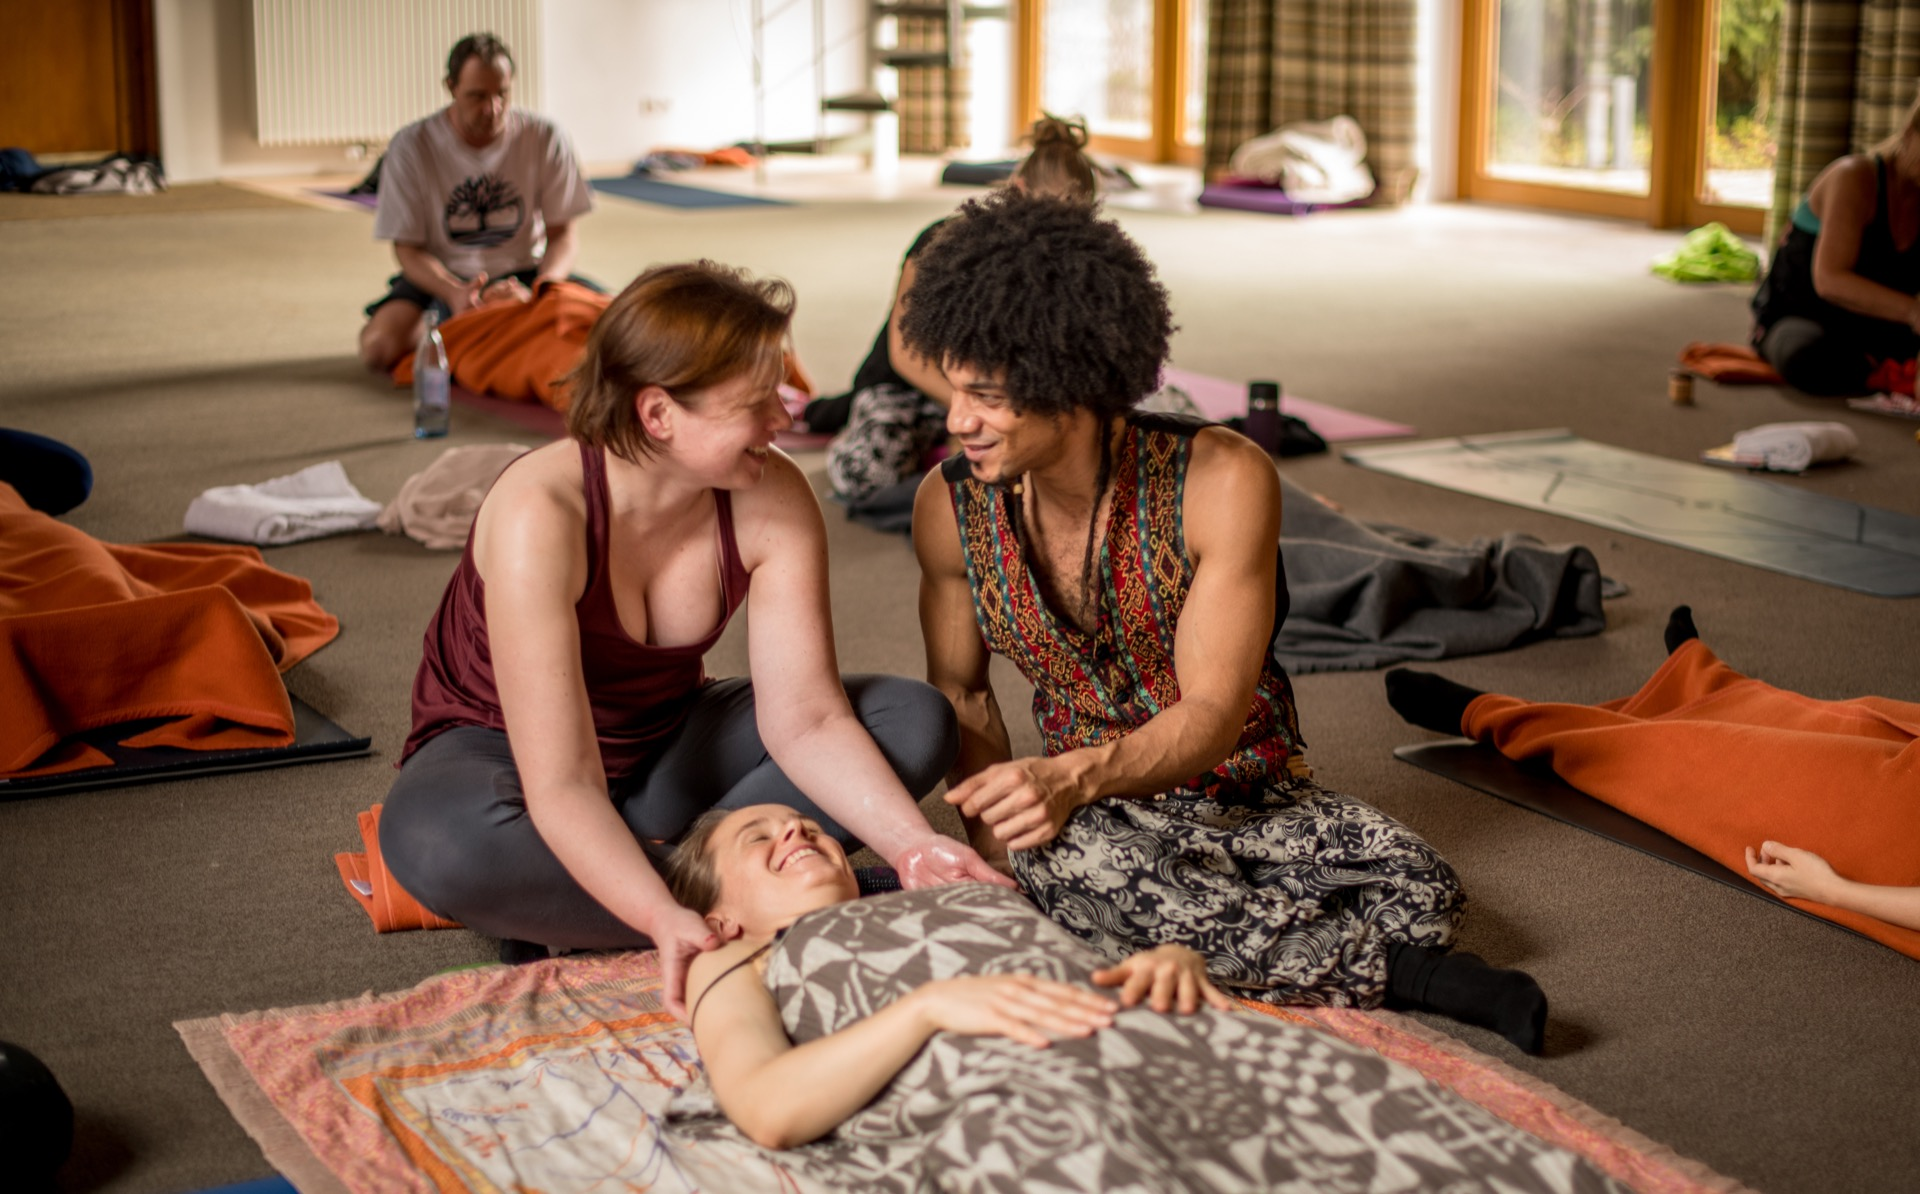 A-New-Beginning-Hie-Kim-Yoga-Retreat-Alina-Matis-Photography-080 - Hie Kim Yoga - Yoga Retreat - Yoga Workshops und Reisen